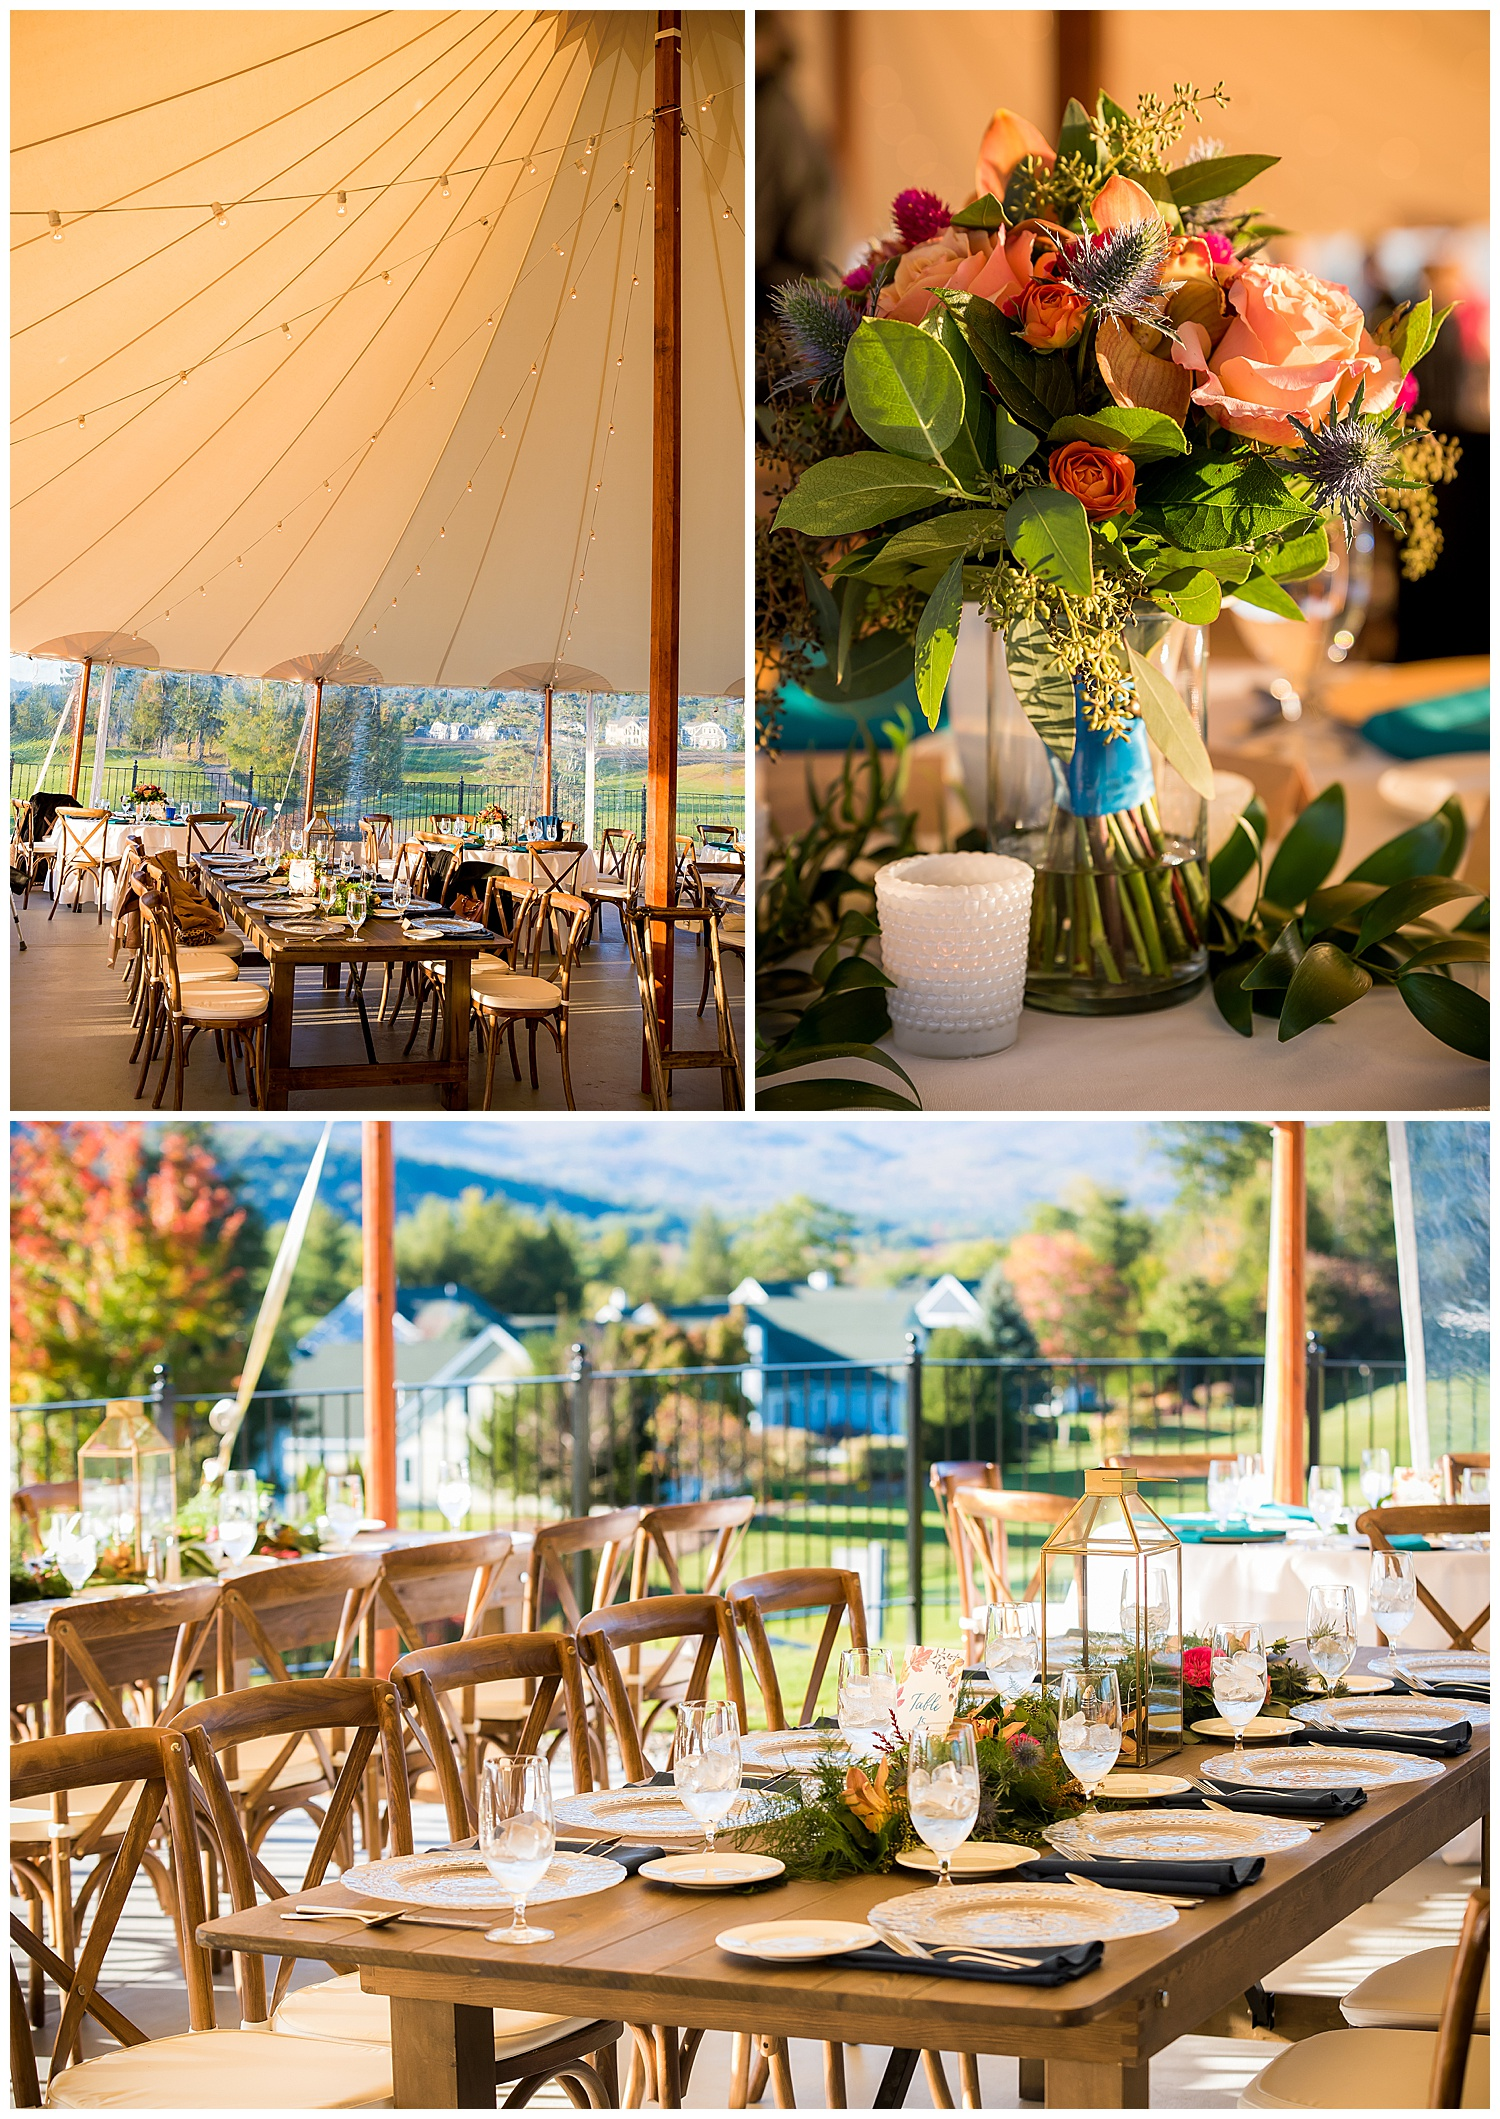 Owl's Nest White Mountain Wedding - Sailcloth Tent